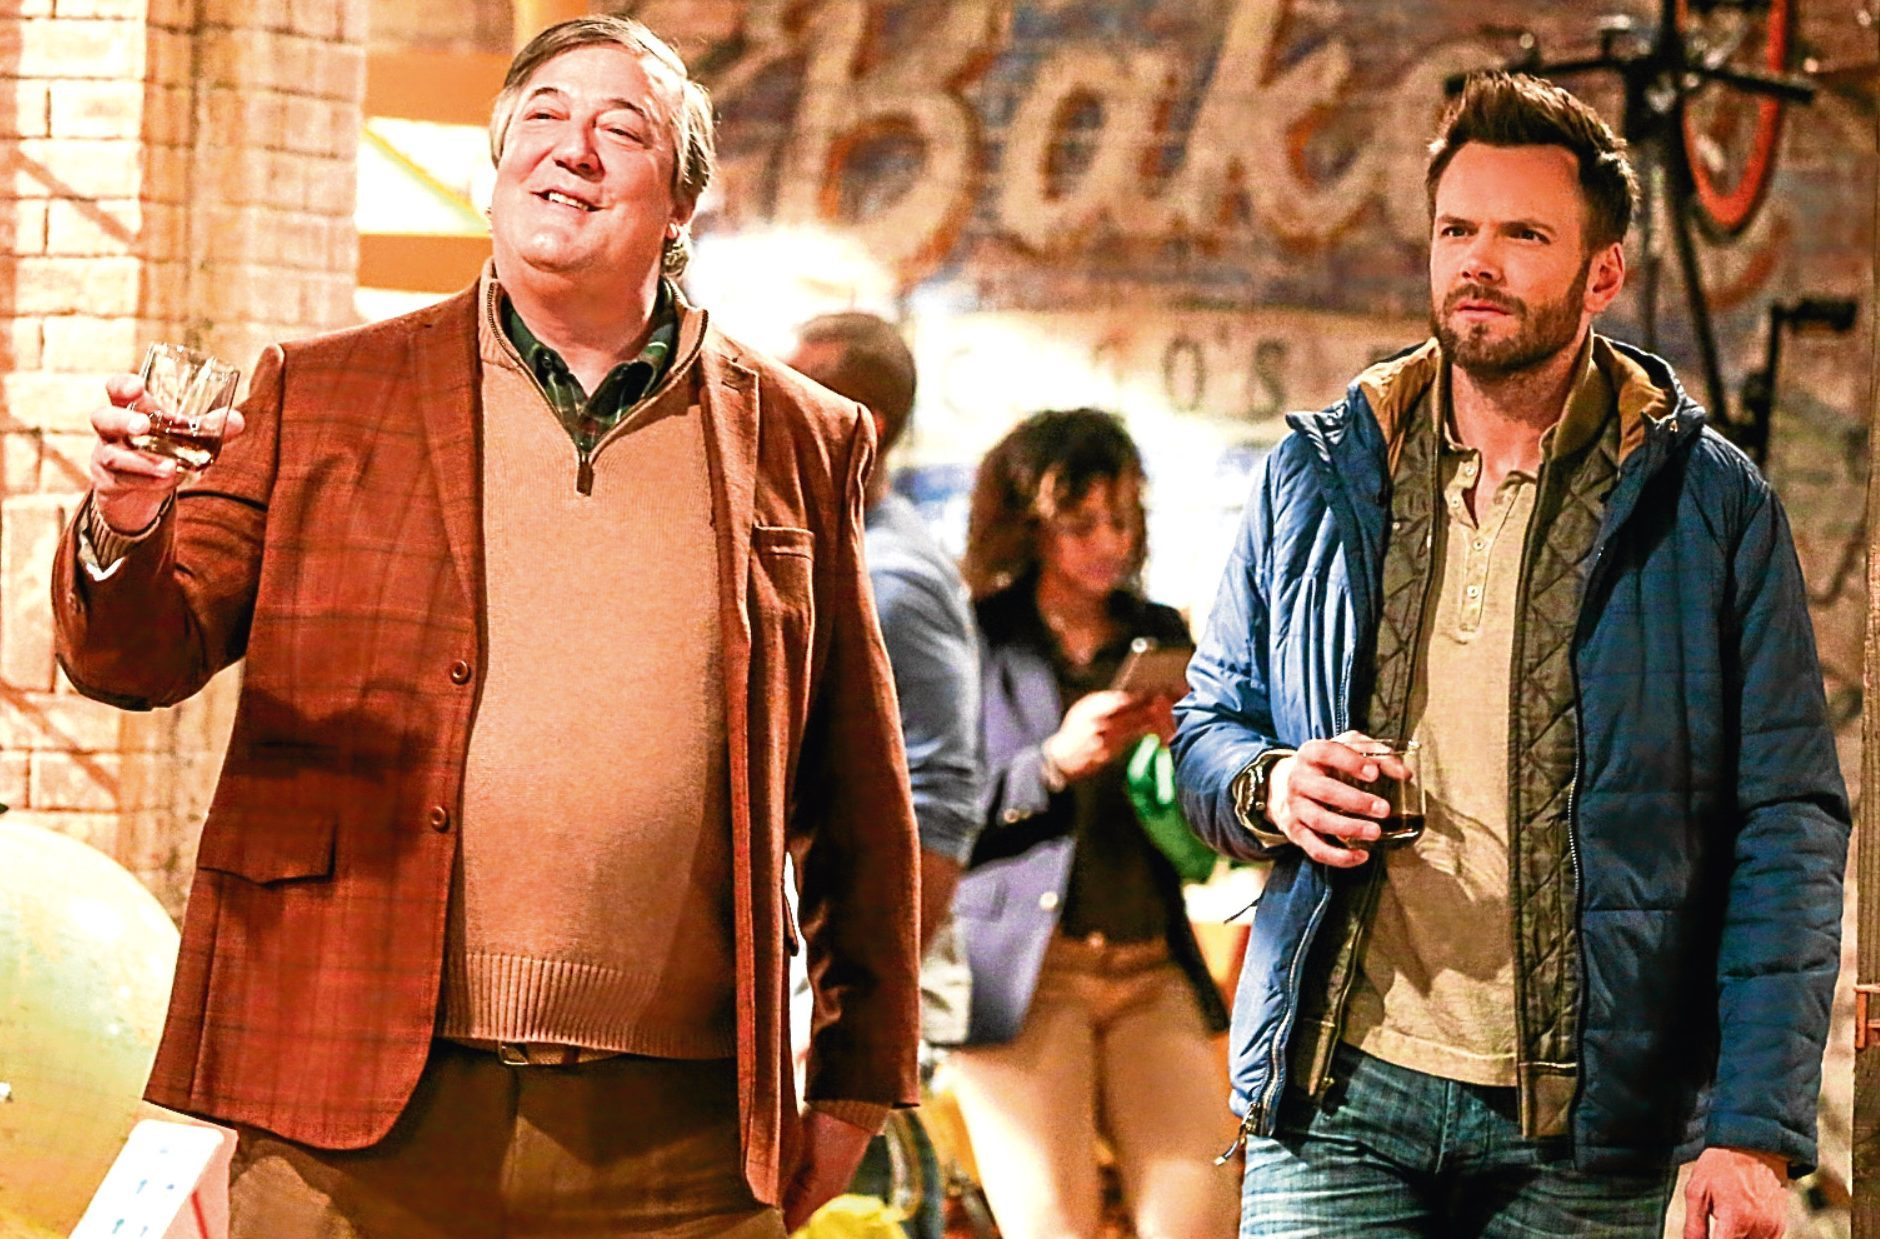 Stephen Fry alongside Joel McHale in The Great Indoors